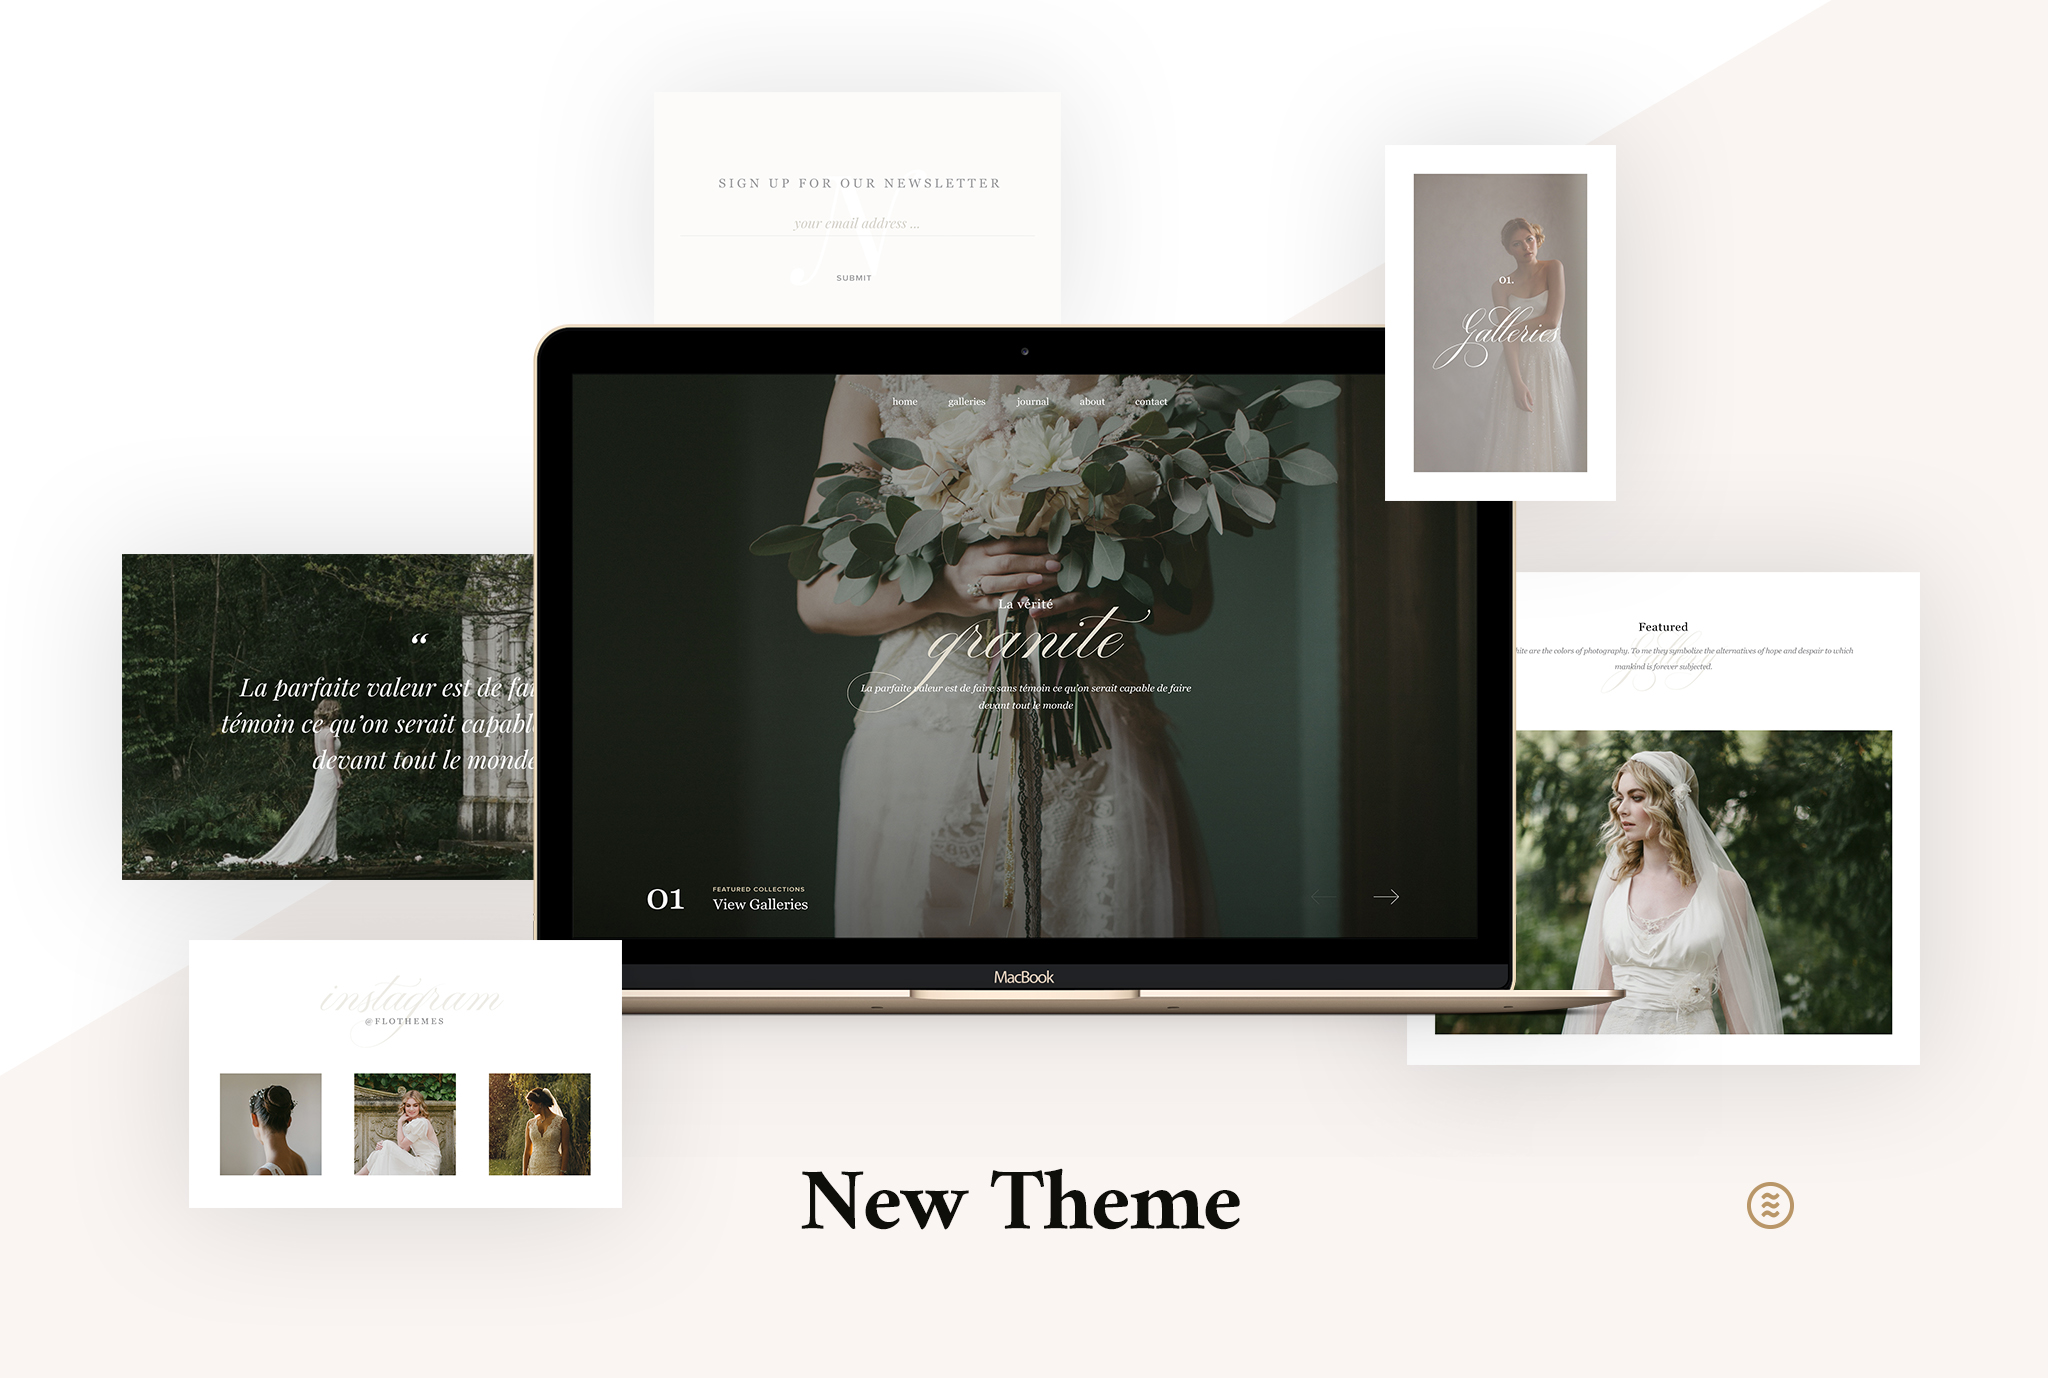 Granite - A Minimalistic Fine Art WordPress Theme